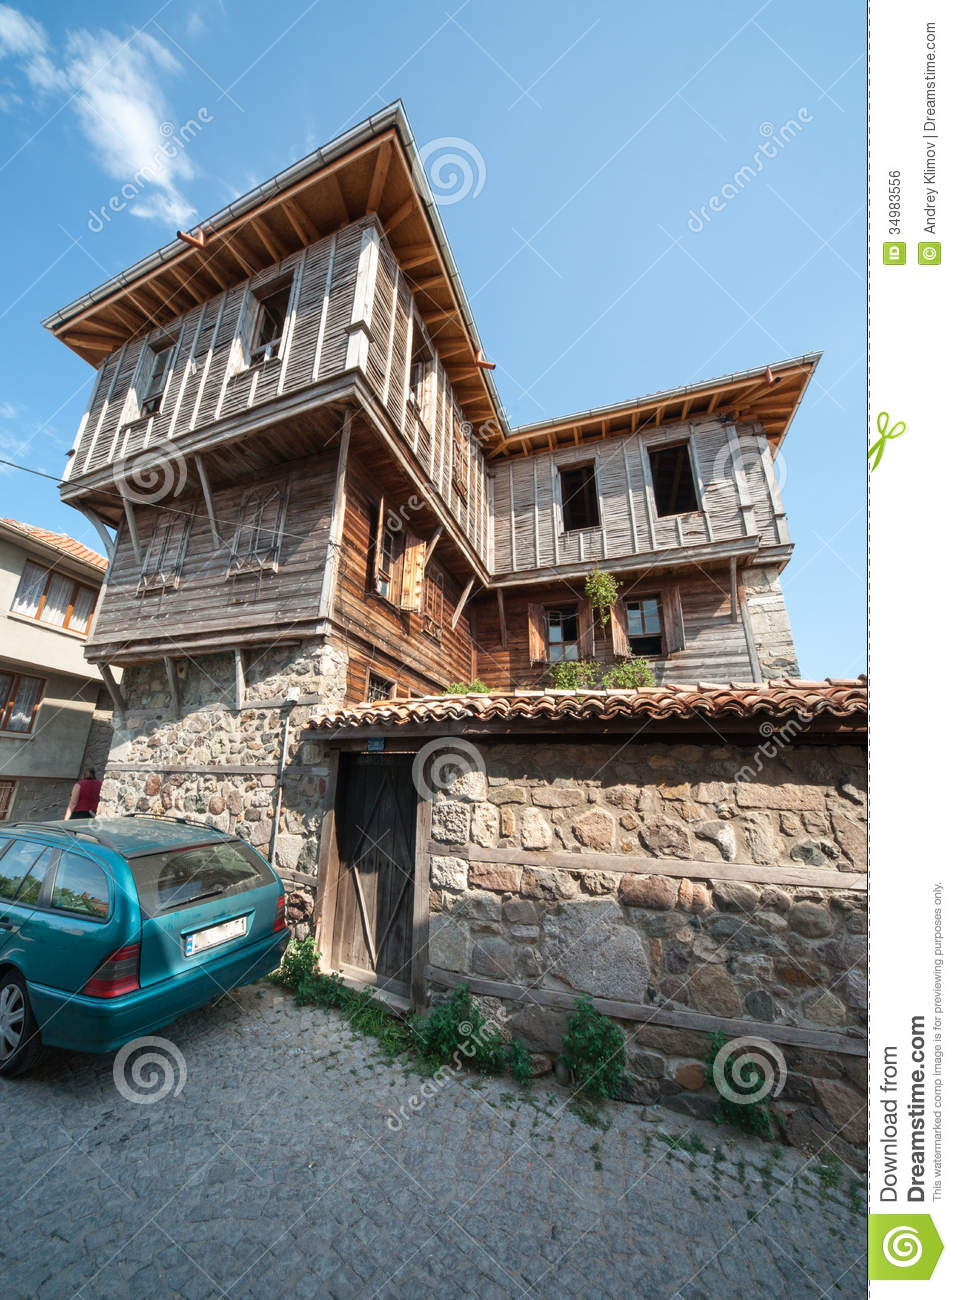 ncient rchitectural Style In Bulgaria oyalty Free Stock Image ... - ^